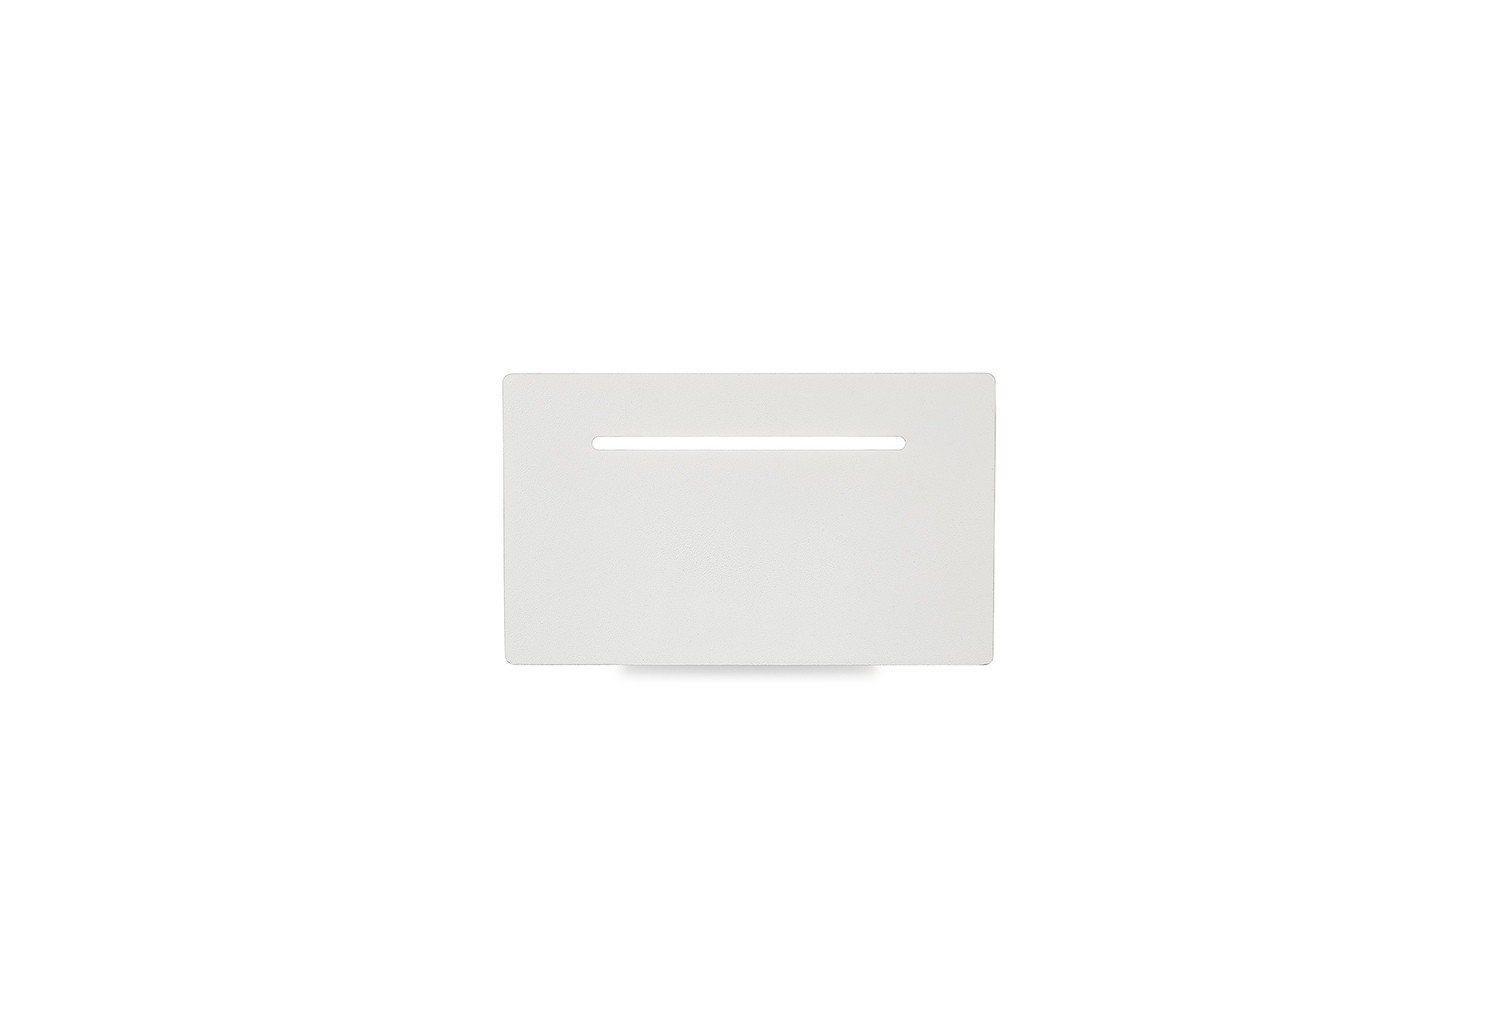 Toja Wall Lamp Rectangular, 8W LED, 3000K, 720lm, White, 3yrs Warranty